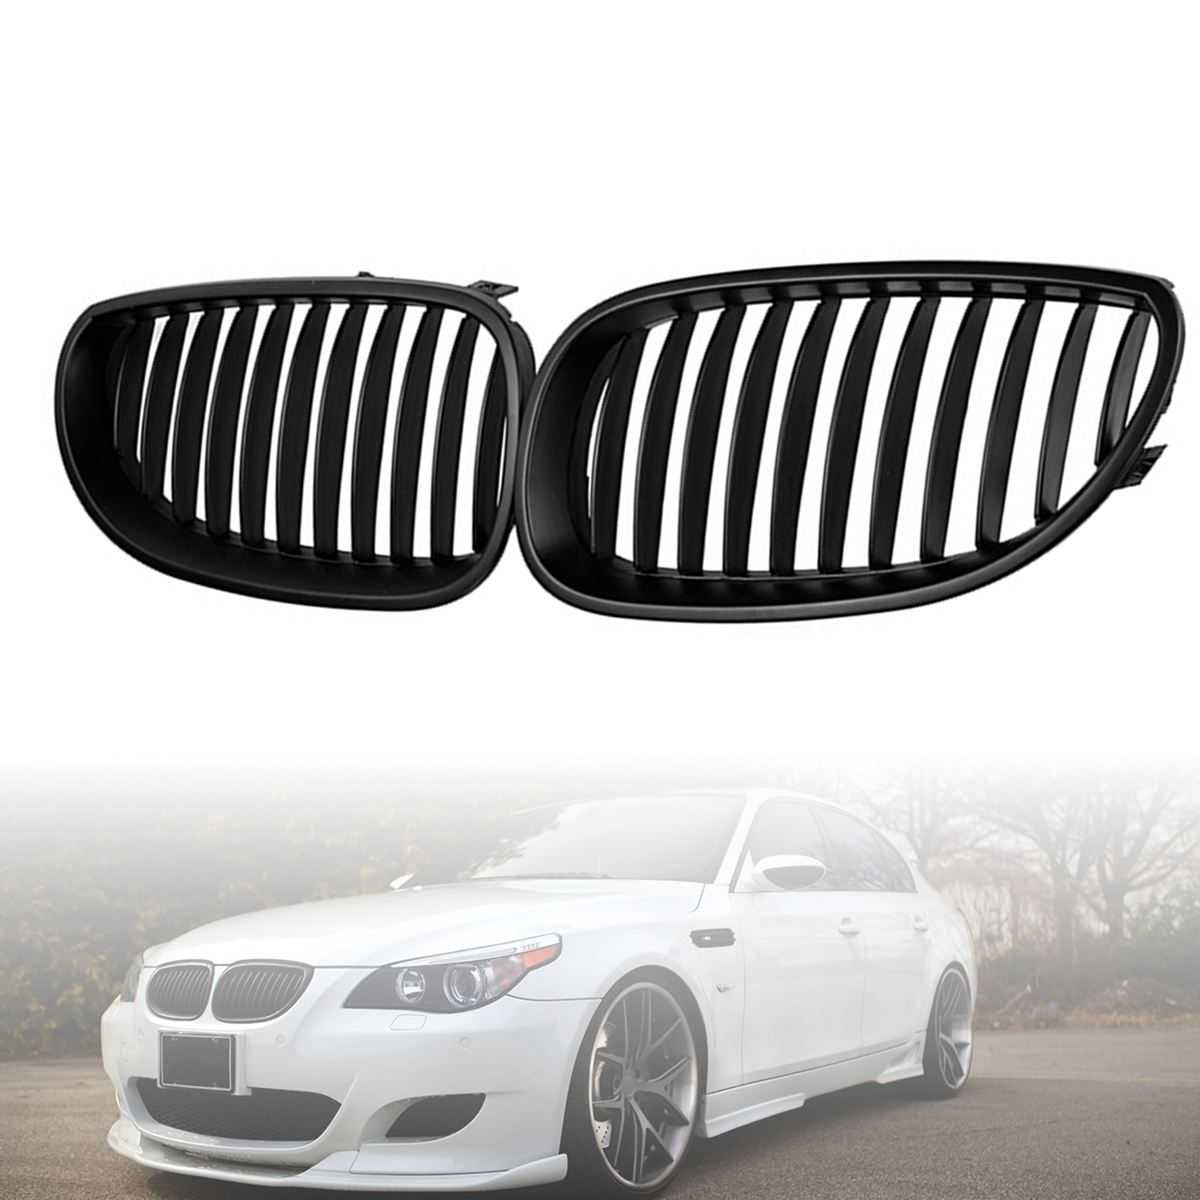 2pcs Front Black Sport Wide Kidney Grille Grill For BMW E60 E61 5 Series M5 2003-2009